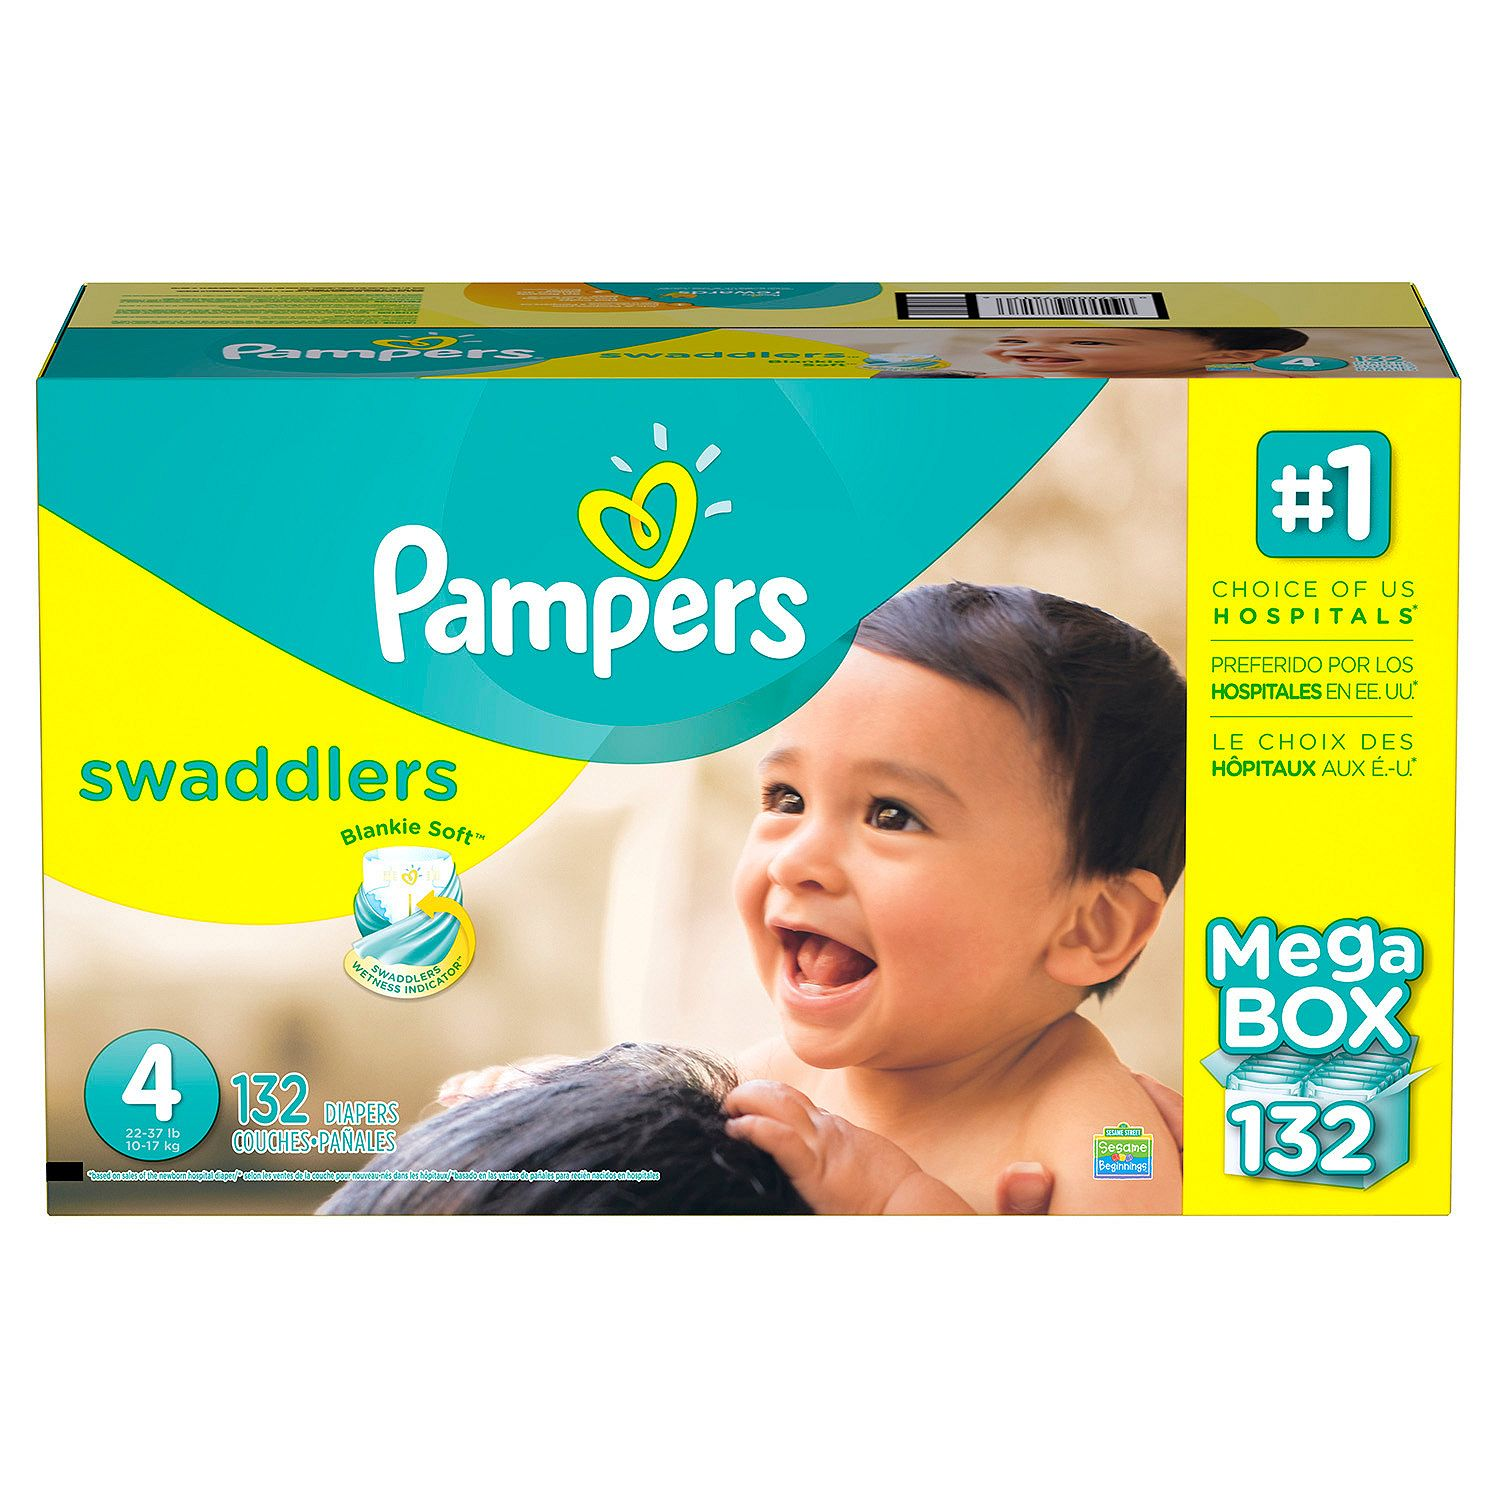 Pampers' Swaddlers Diapers Size 4 - 132 ct. ( Weight 22- 37 lb.) - Bulk Qty, Free Shipping - Comfortable, Soft, No leaking & Good nite Diapers